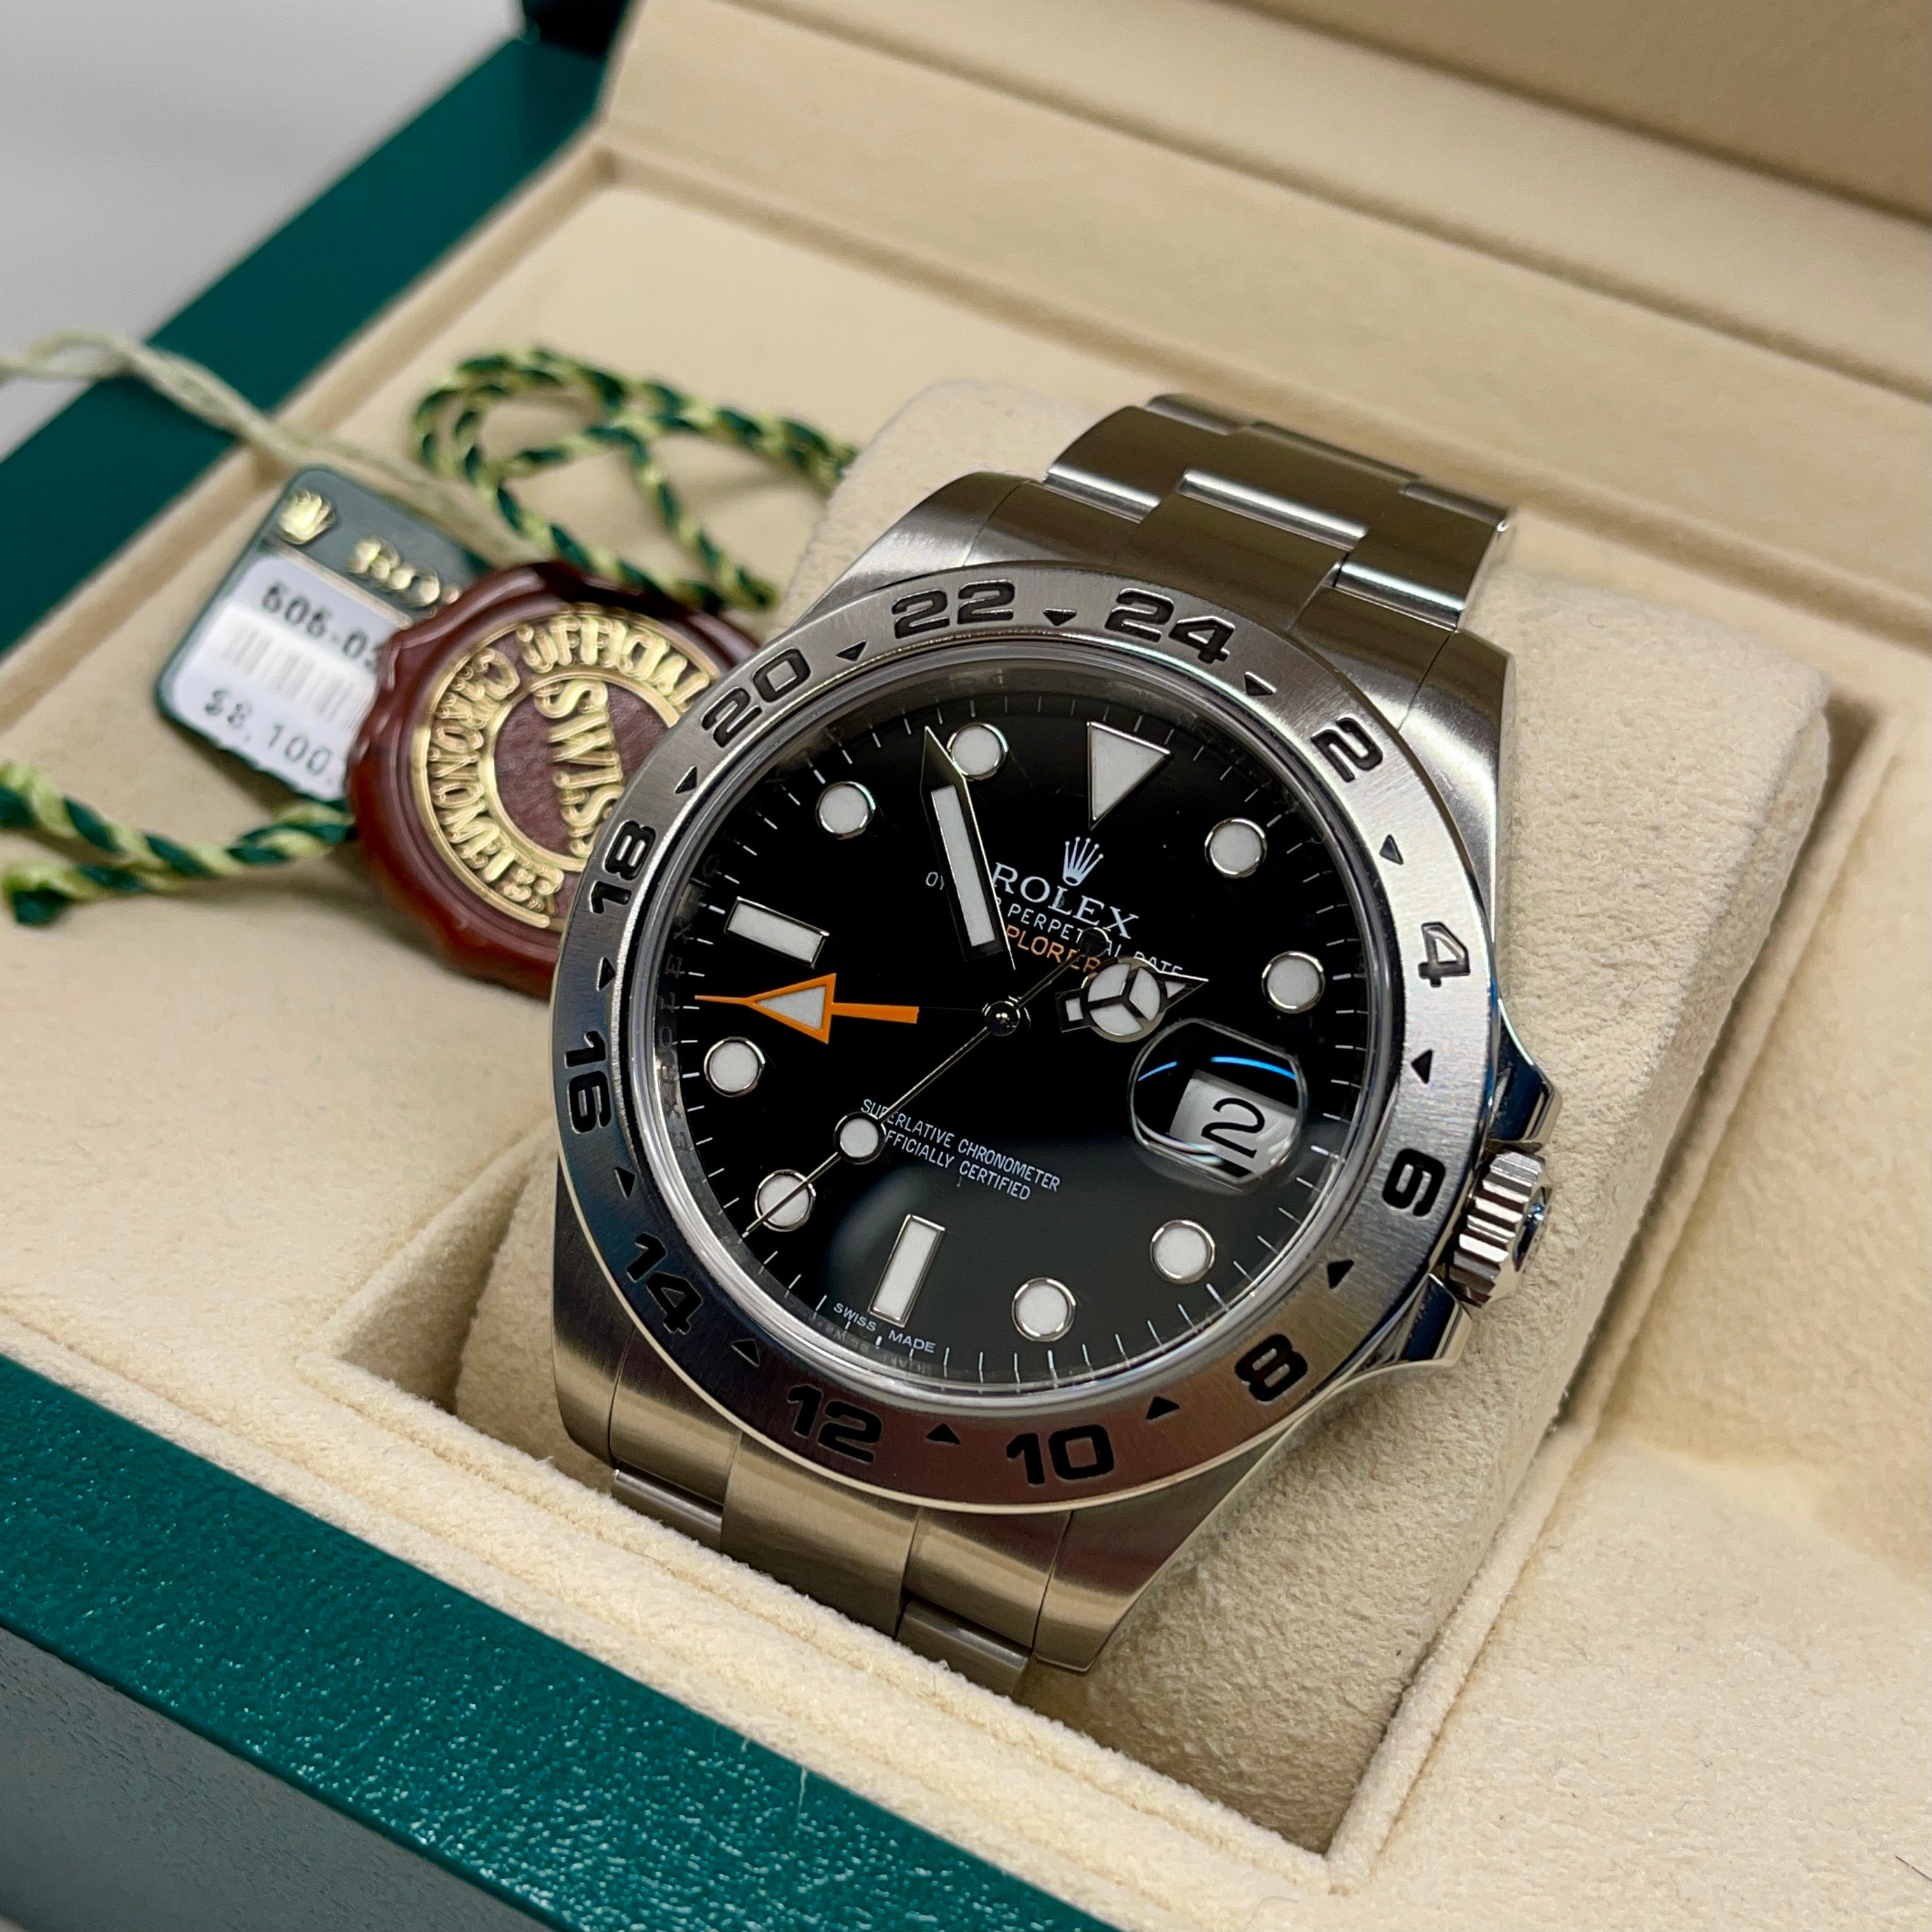 2014 Rolex Explorer II 216570 Stainless Steel GMT Oyster Black Wristwatch Box Papers - Hashtag Watch Company